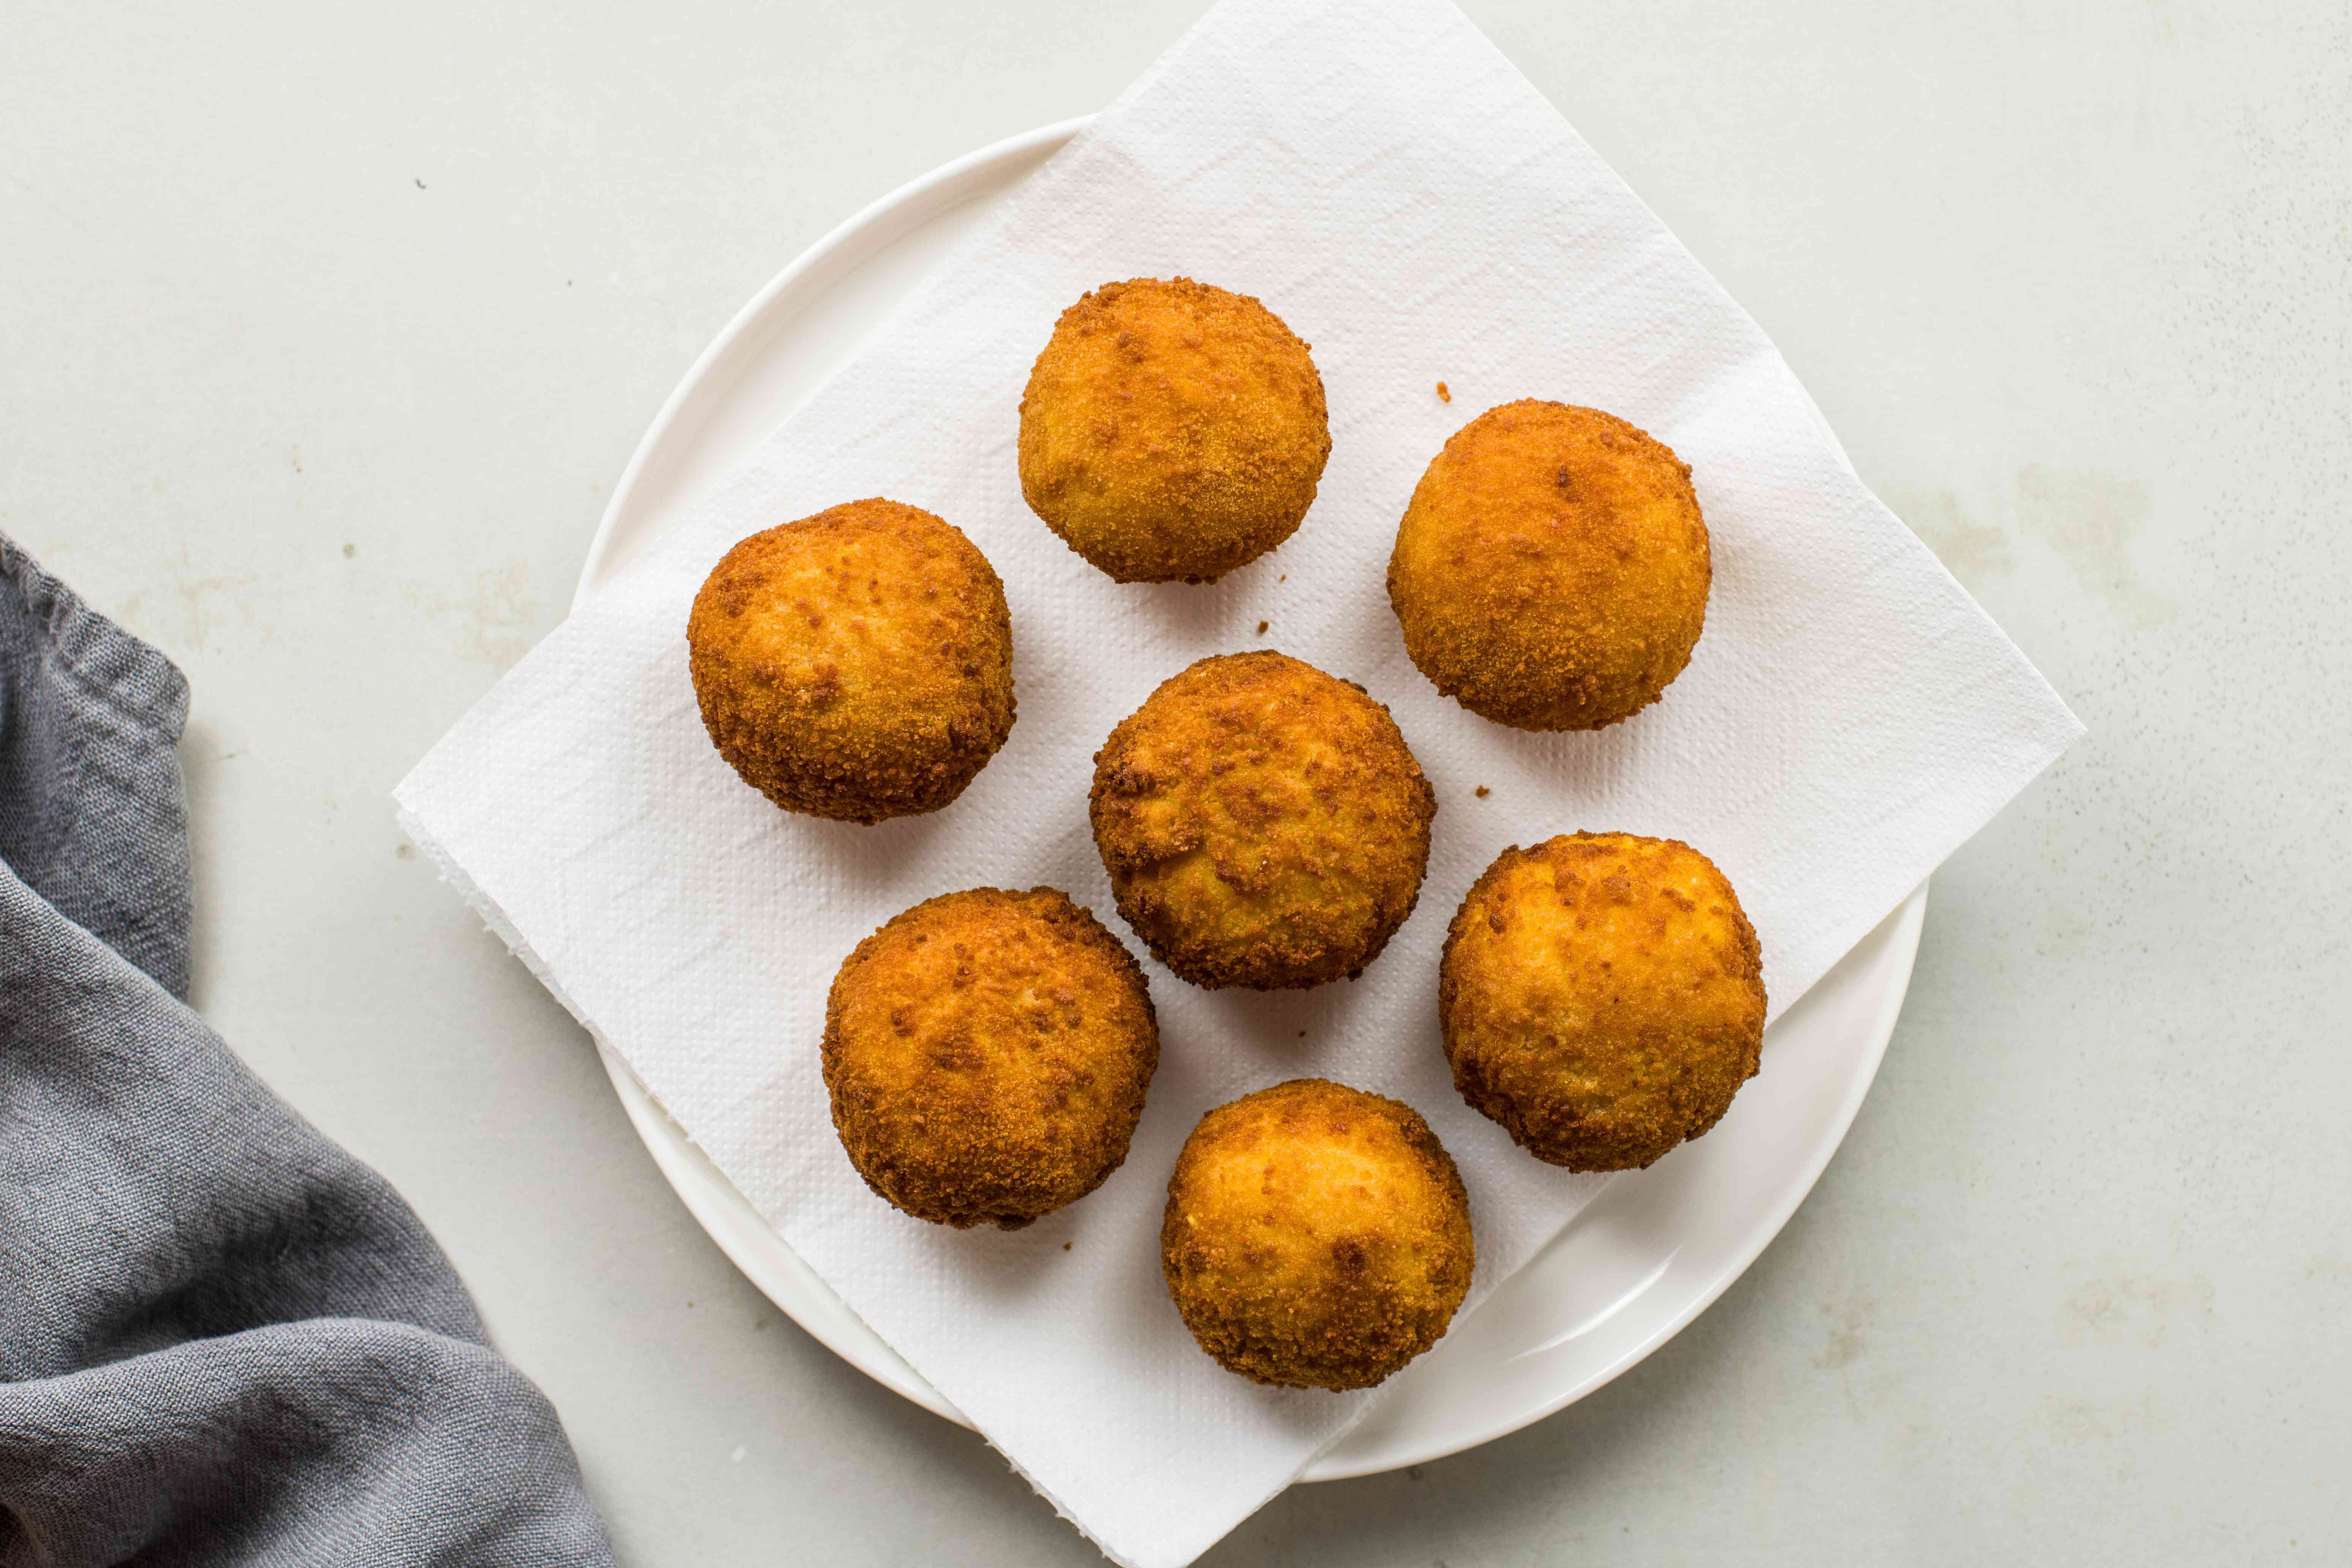 Arancini fried and draining on a paper towel-lined plate